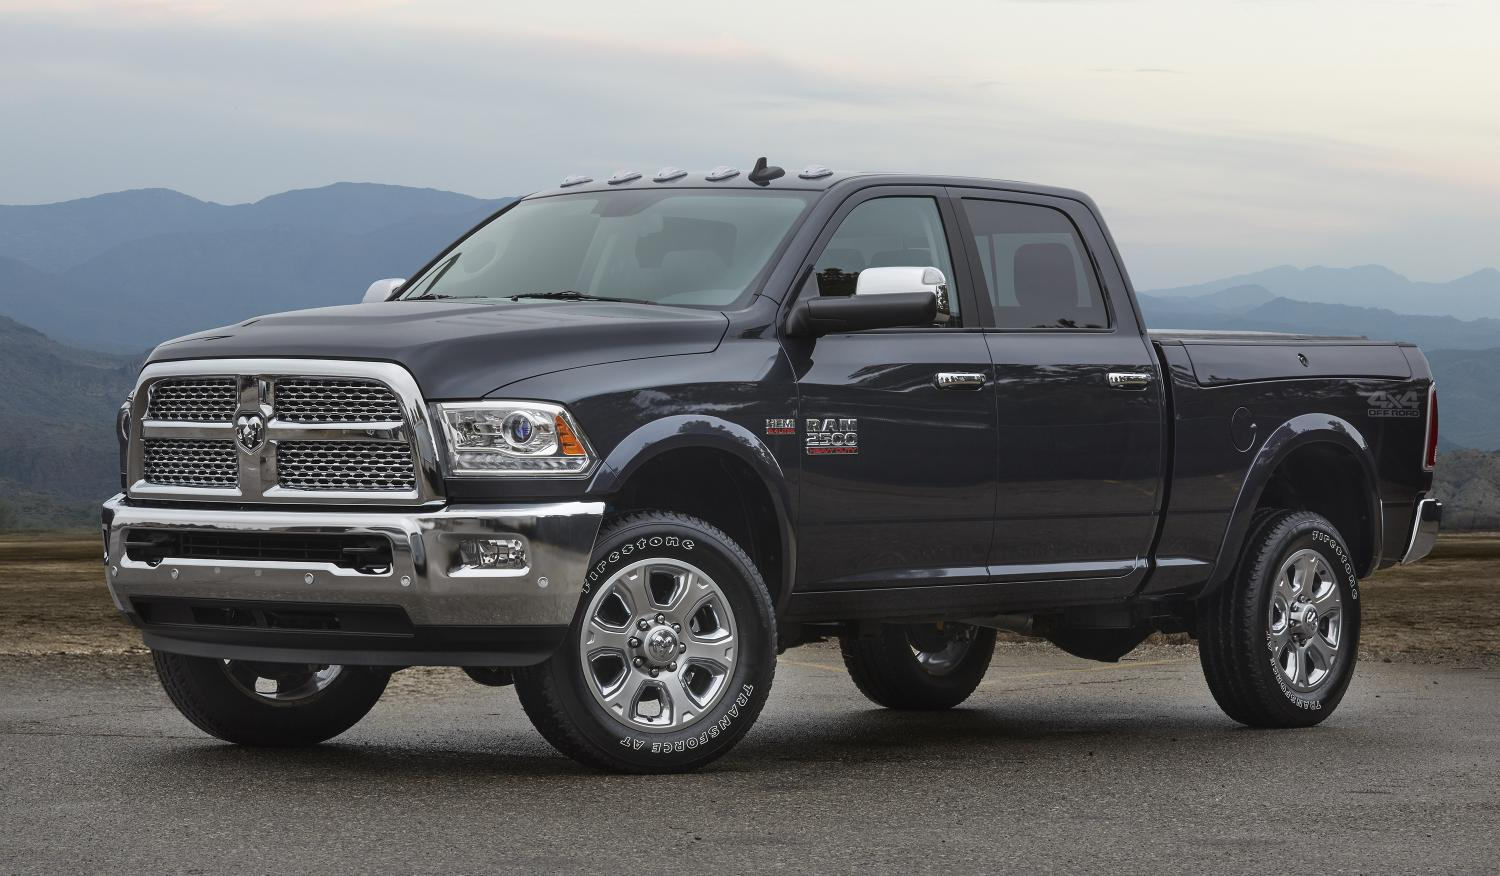 Dodge Ram Laramie Limited 2017 >> 2016 Ram 2500 4x4 Off-Road Package Adds Plenty of Goodies for a Small Price - autoevolution